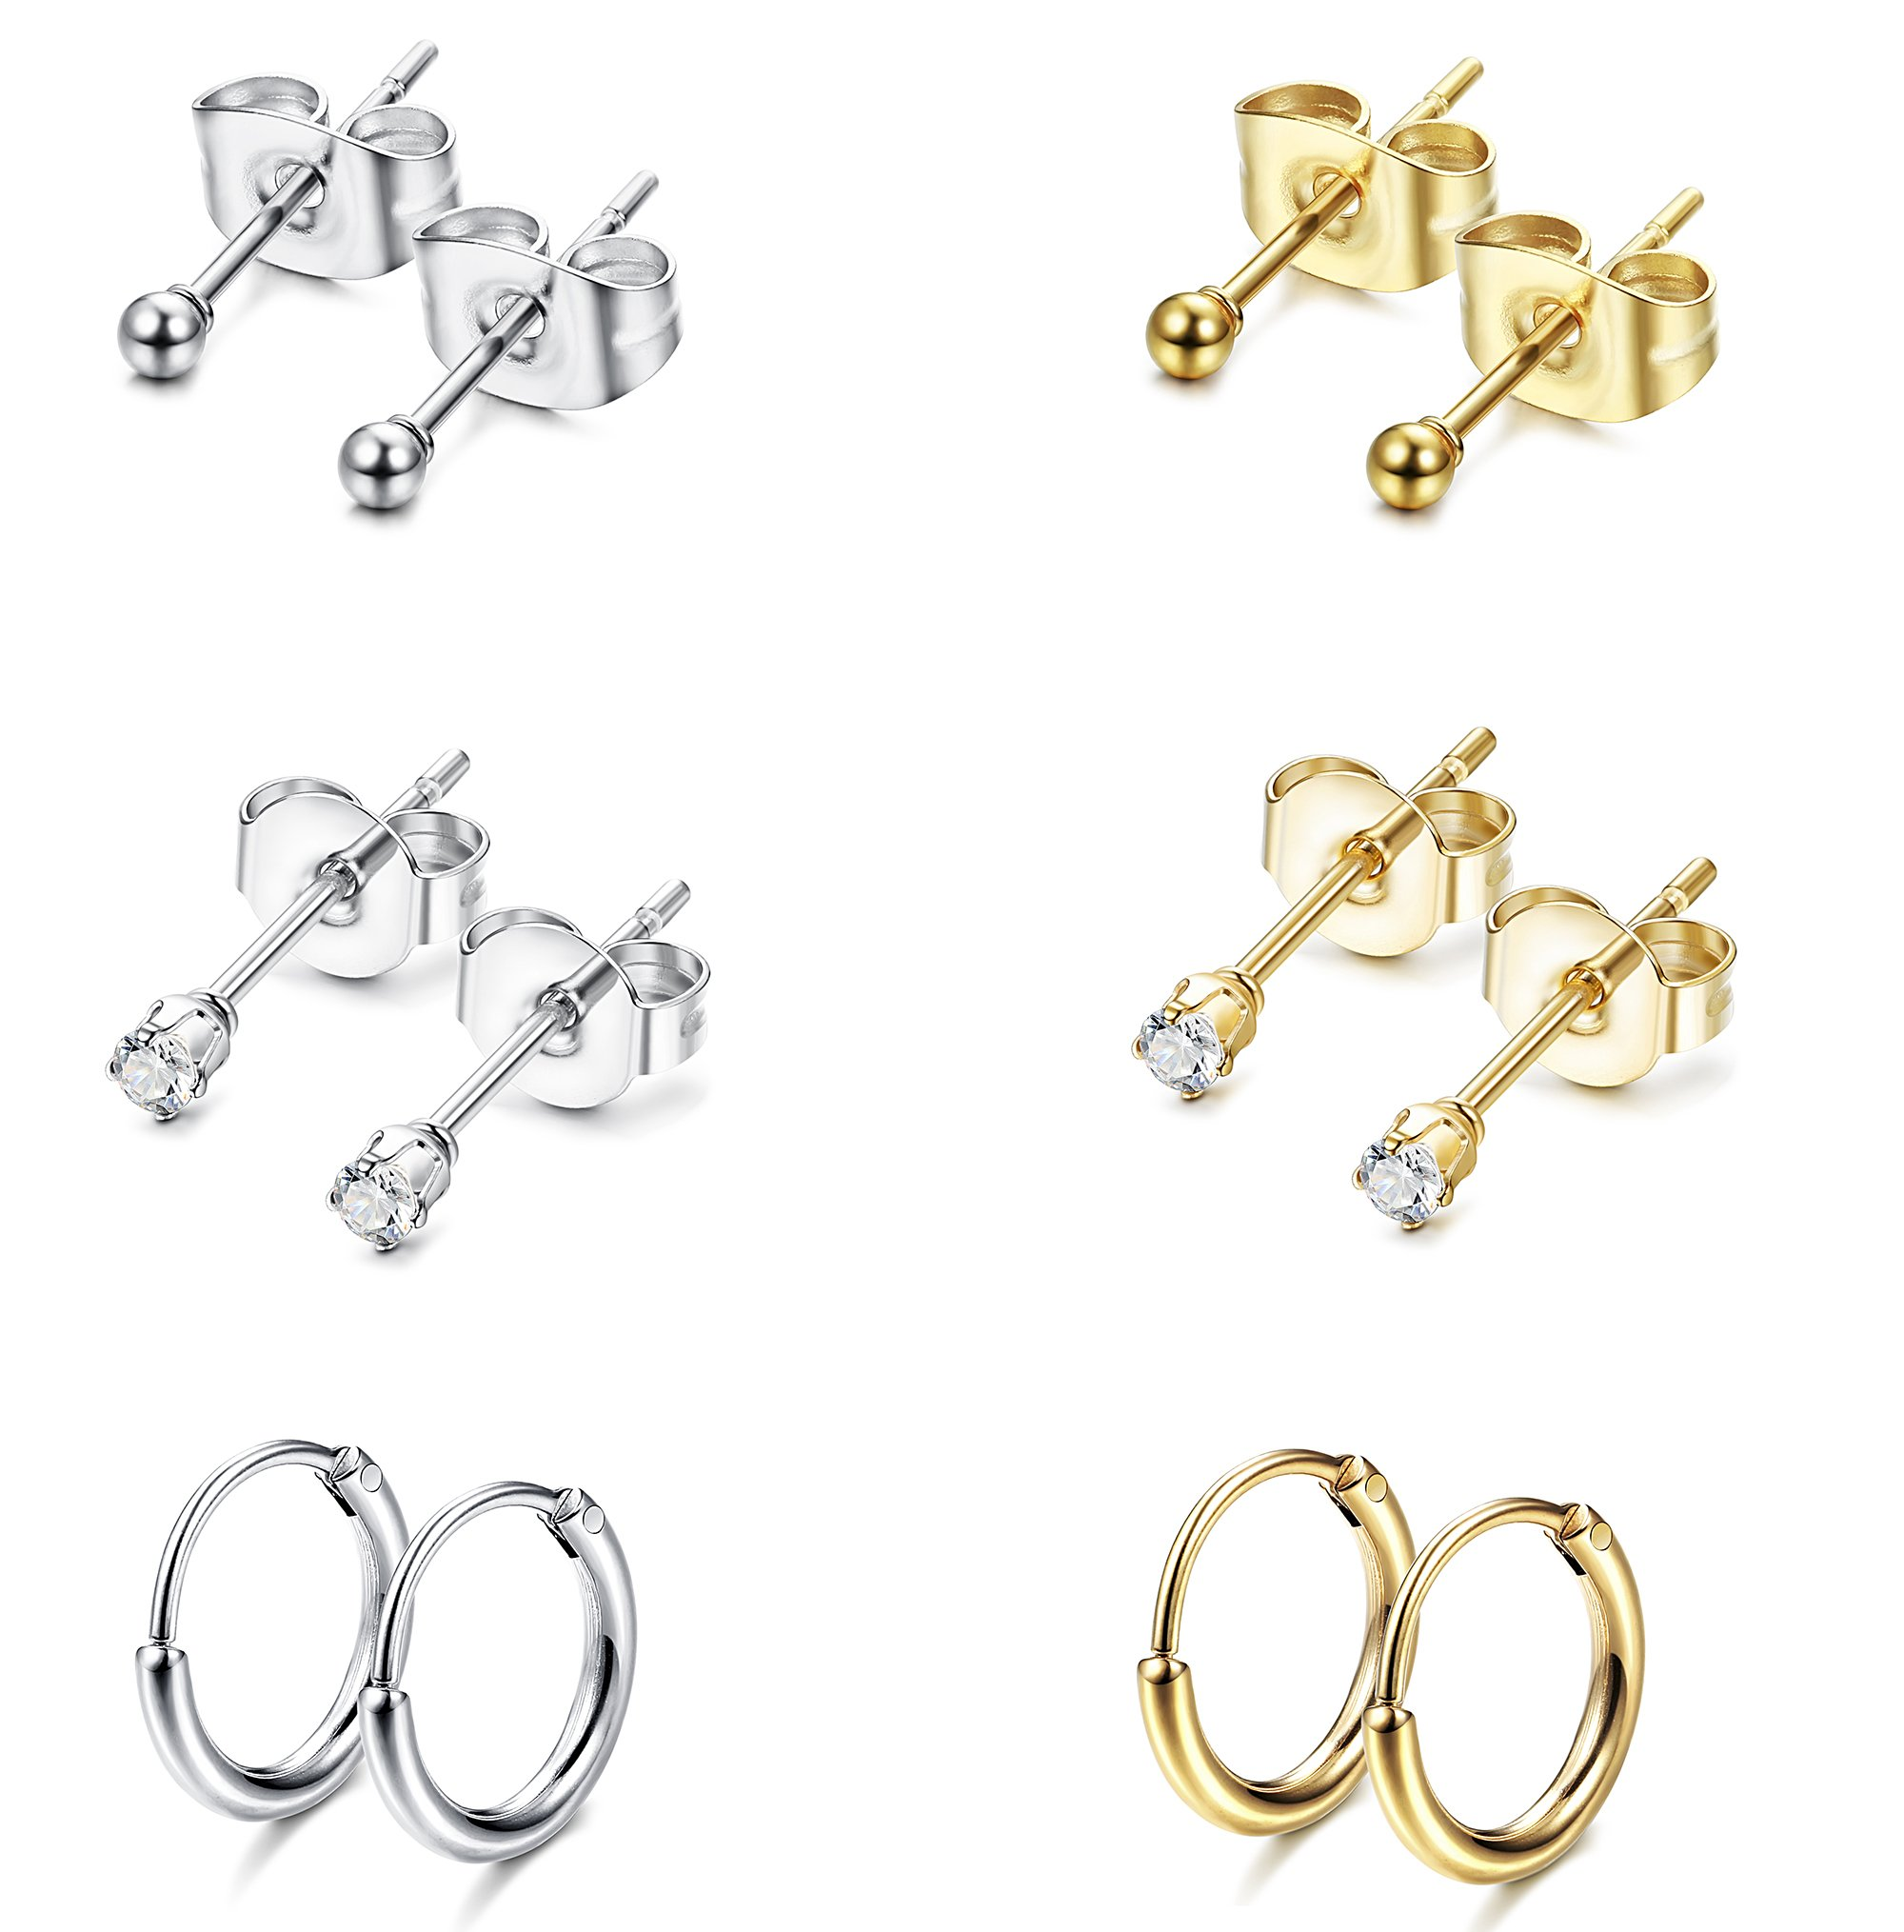 Jstyle Stainless Steel 2mm Tiny Stud Earrings for Women Mens Endless Hoops CZ Balls Cartilage Earrings Set Silver Gold